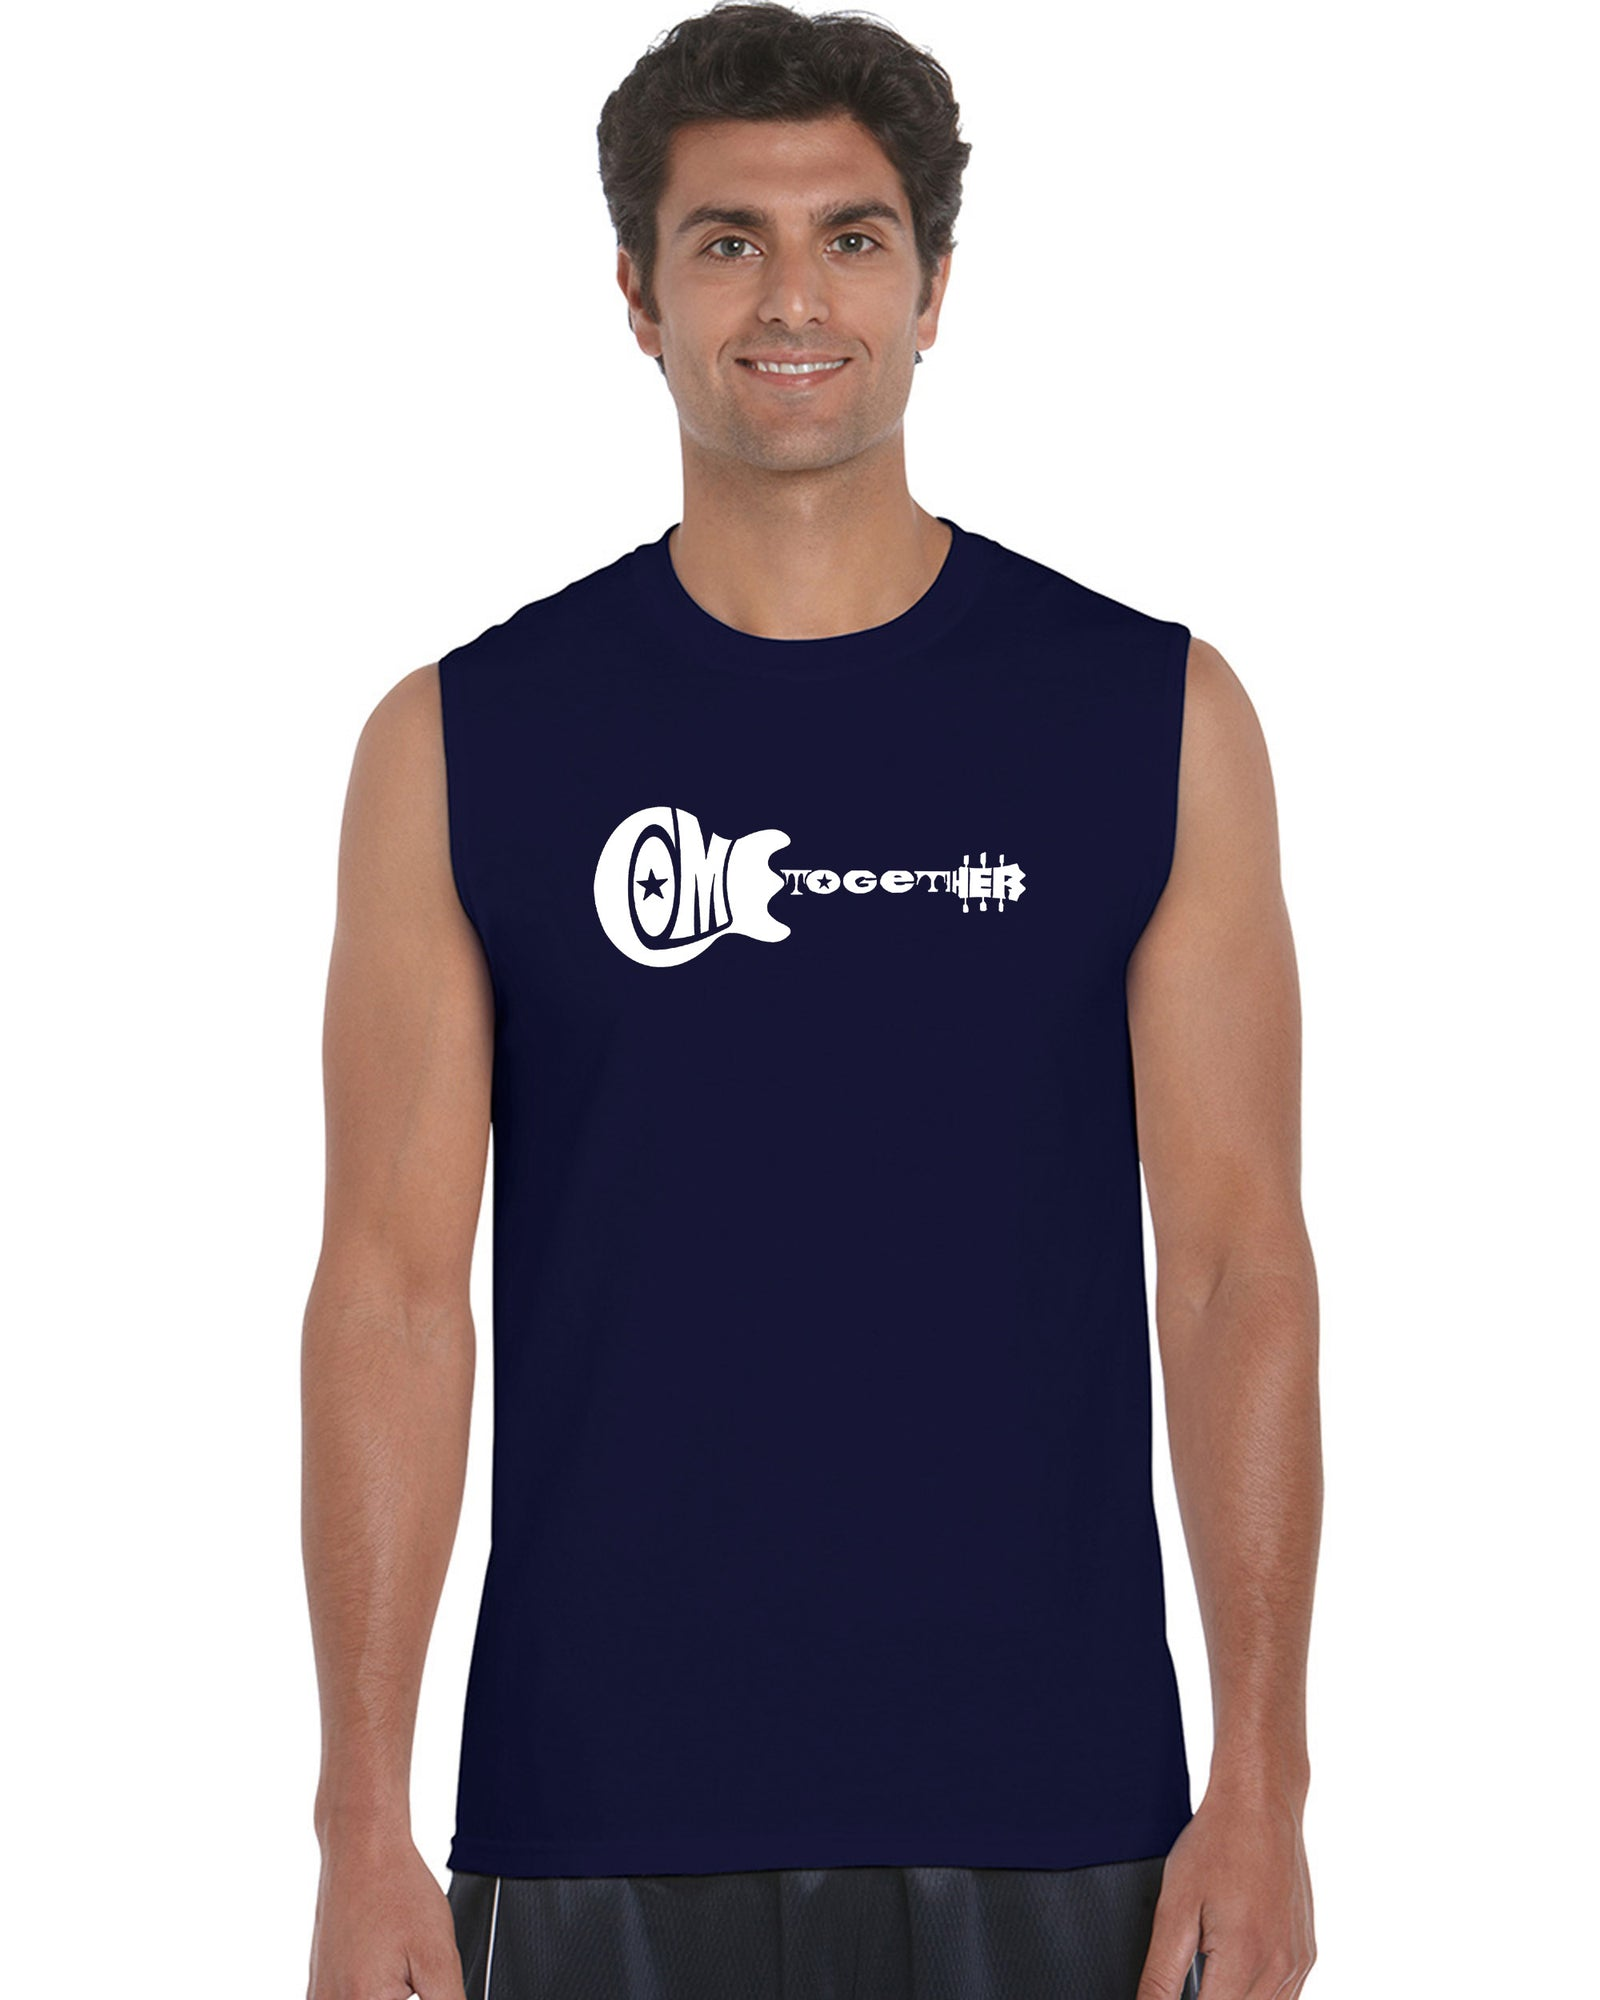 Men's Sleeveless T-shirt - COME TOGETHER